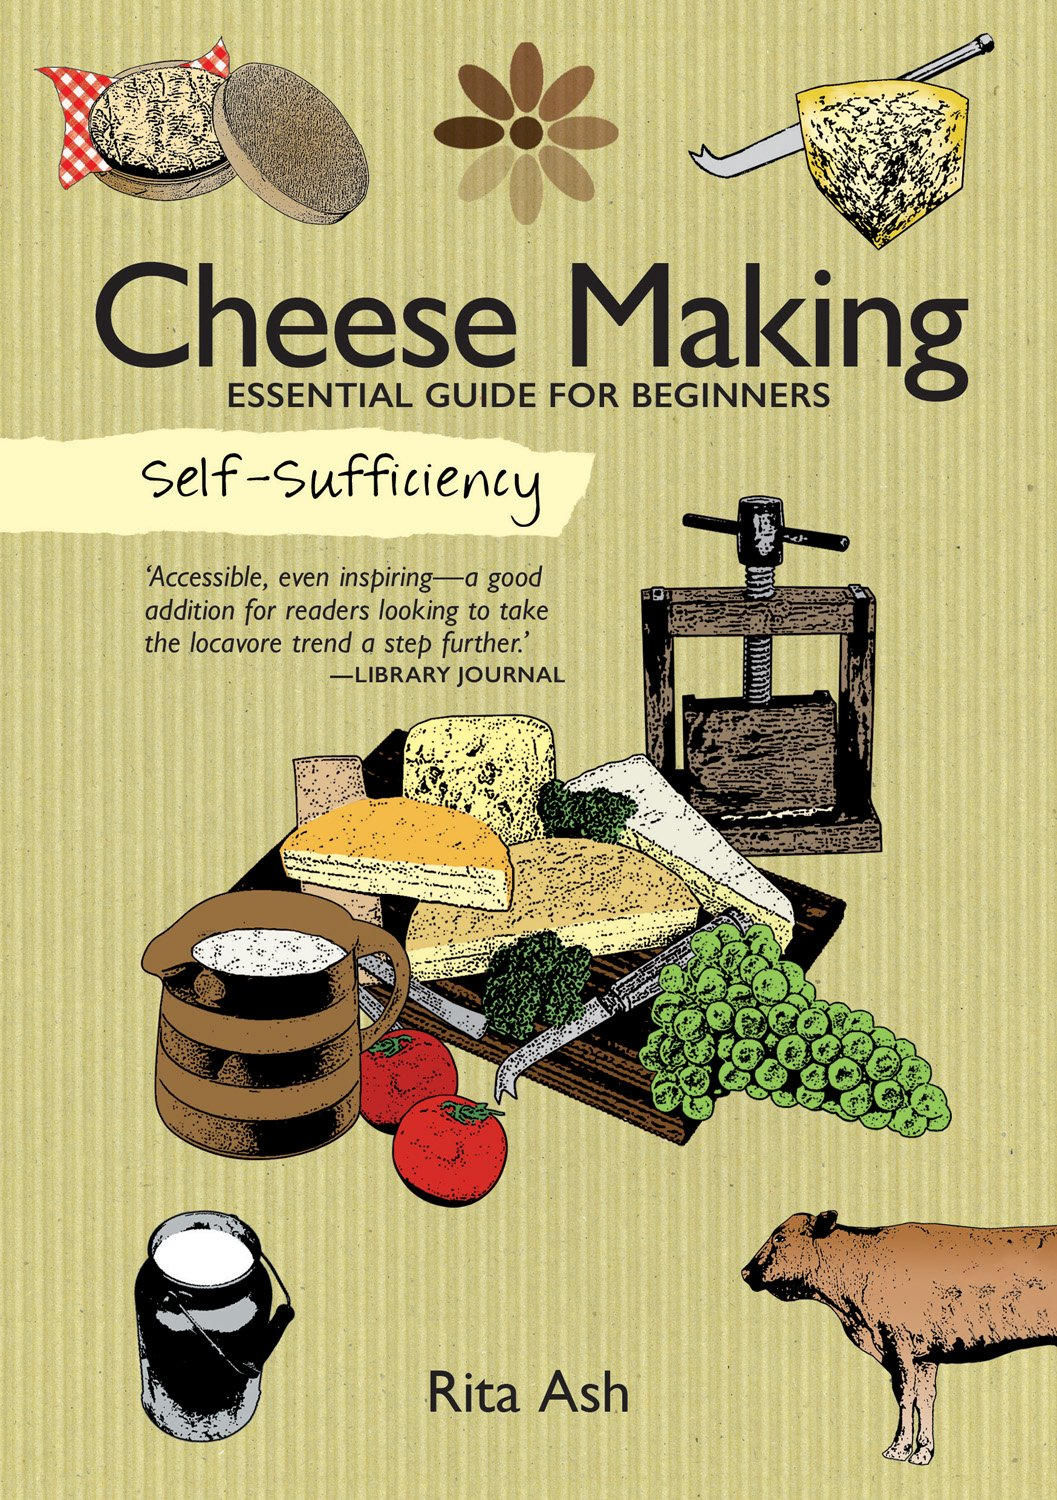 Download Self-Sufficiency: Cheese Making: Essential Guide for Beginners (IMM Lifestyle Books) Beginner-Friendly Handbook with Recipes, Expert Advice, Troubleshooting, & More PDF